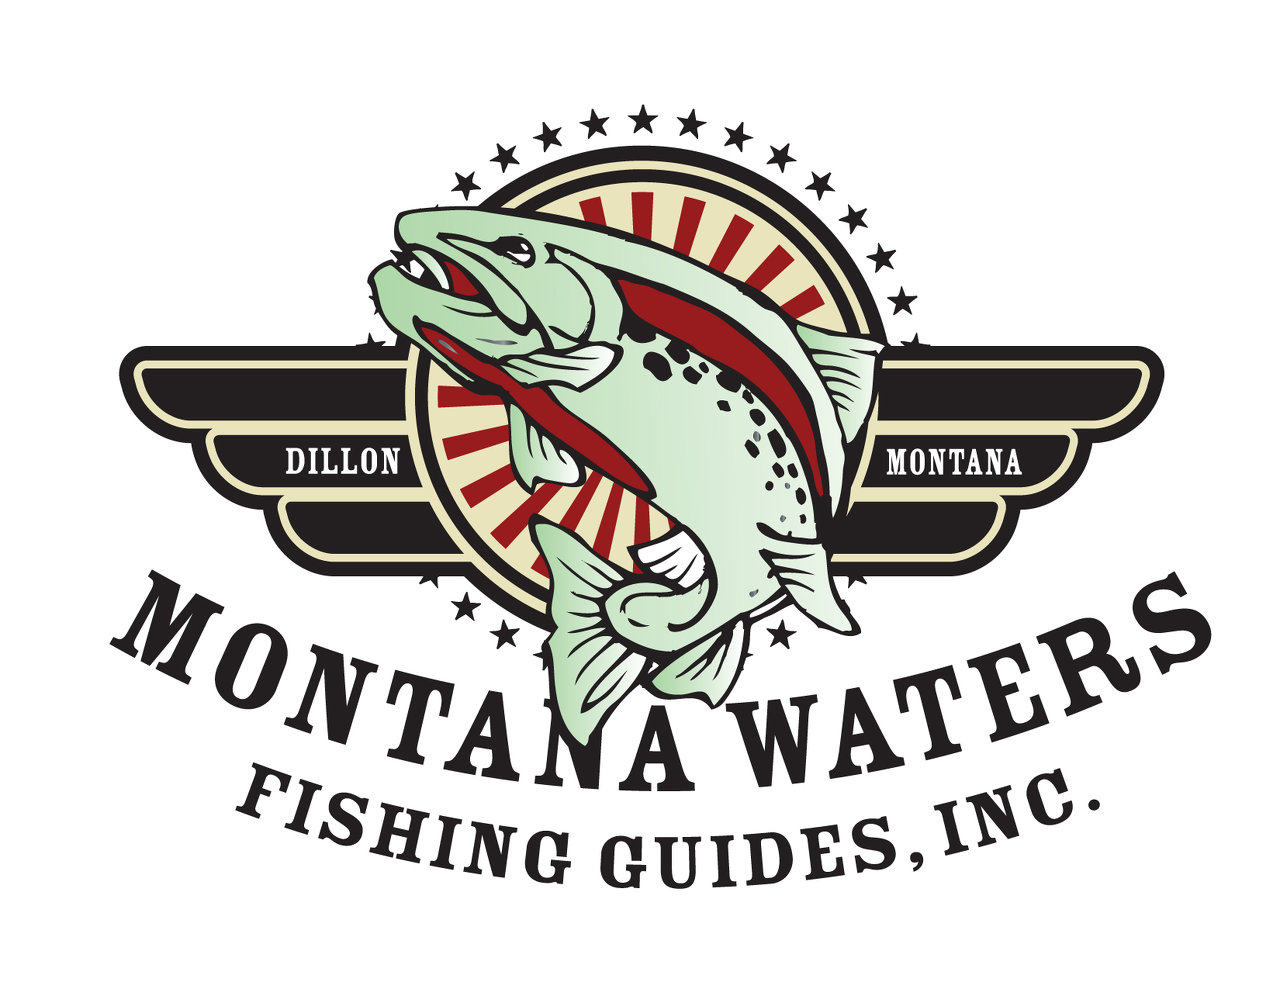 Montana Water Fishing Guides